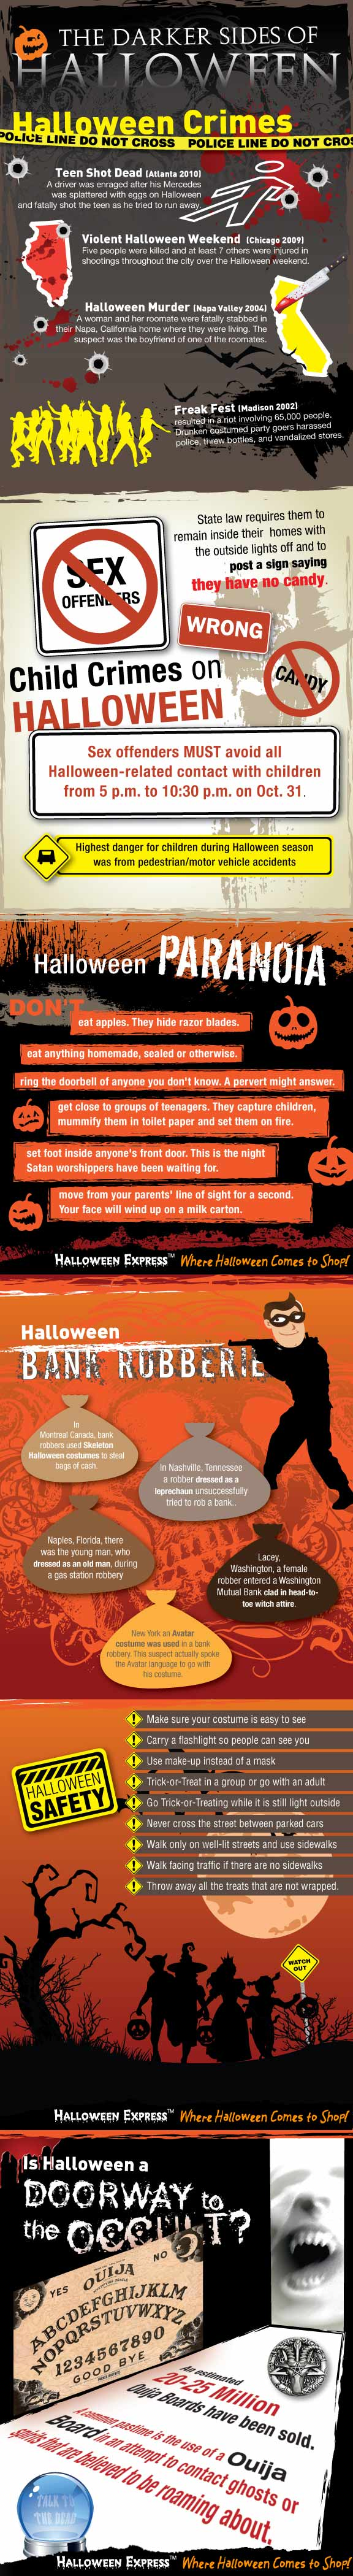 Darker Sides of Halloween Infographic